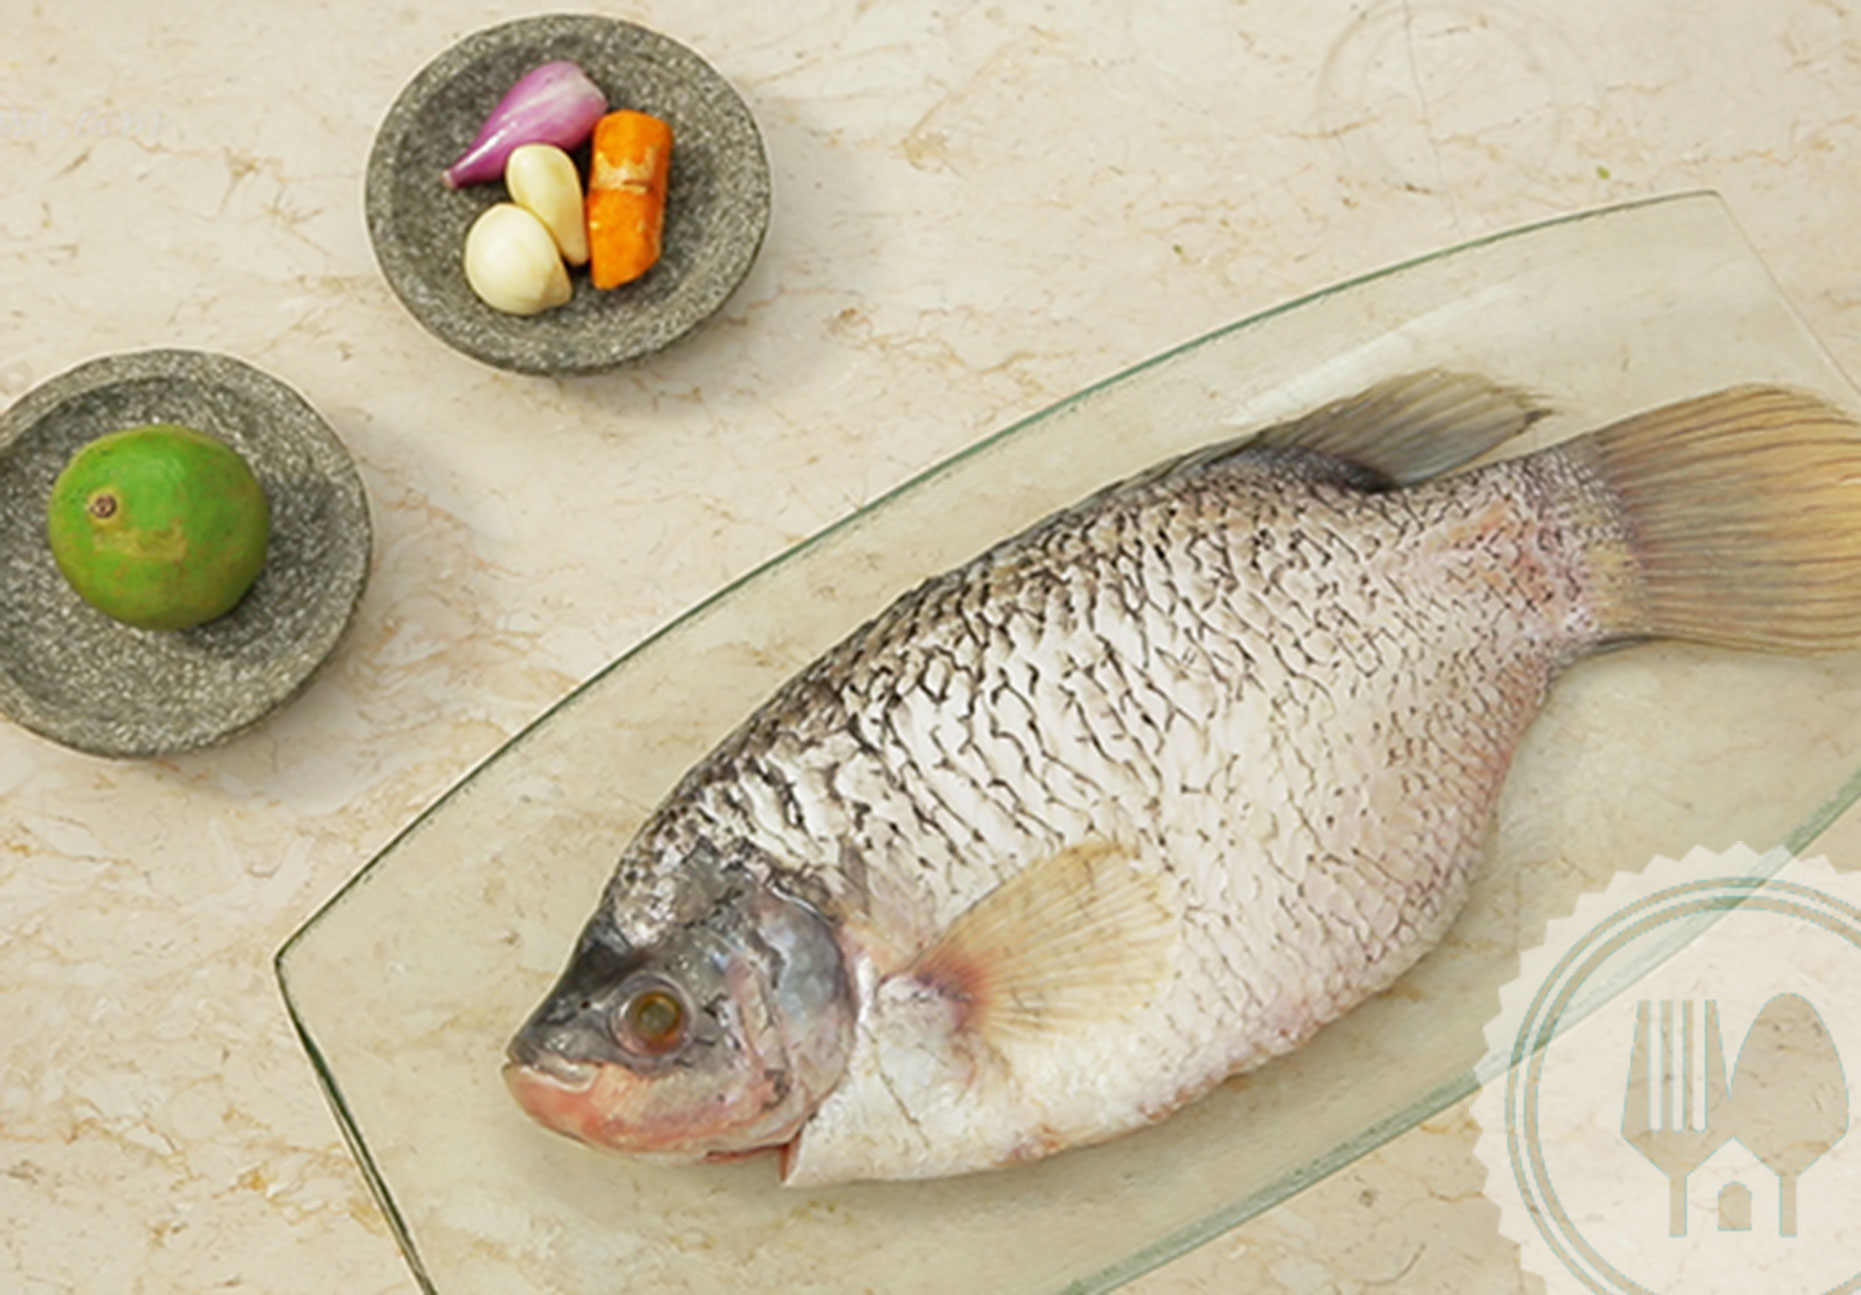 5-ways-to-tell-if-a-fish-has-formalin